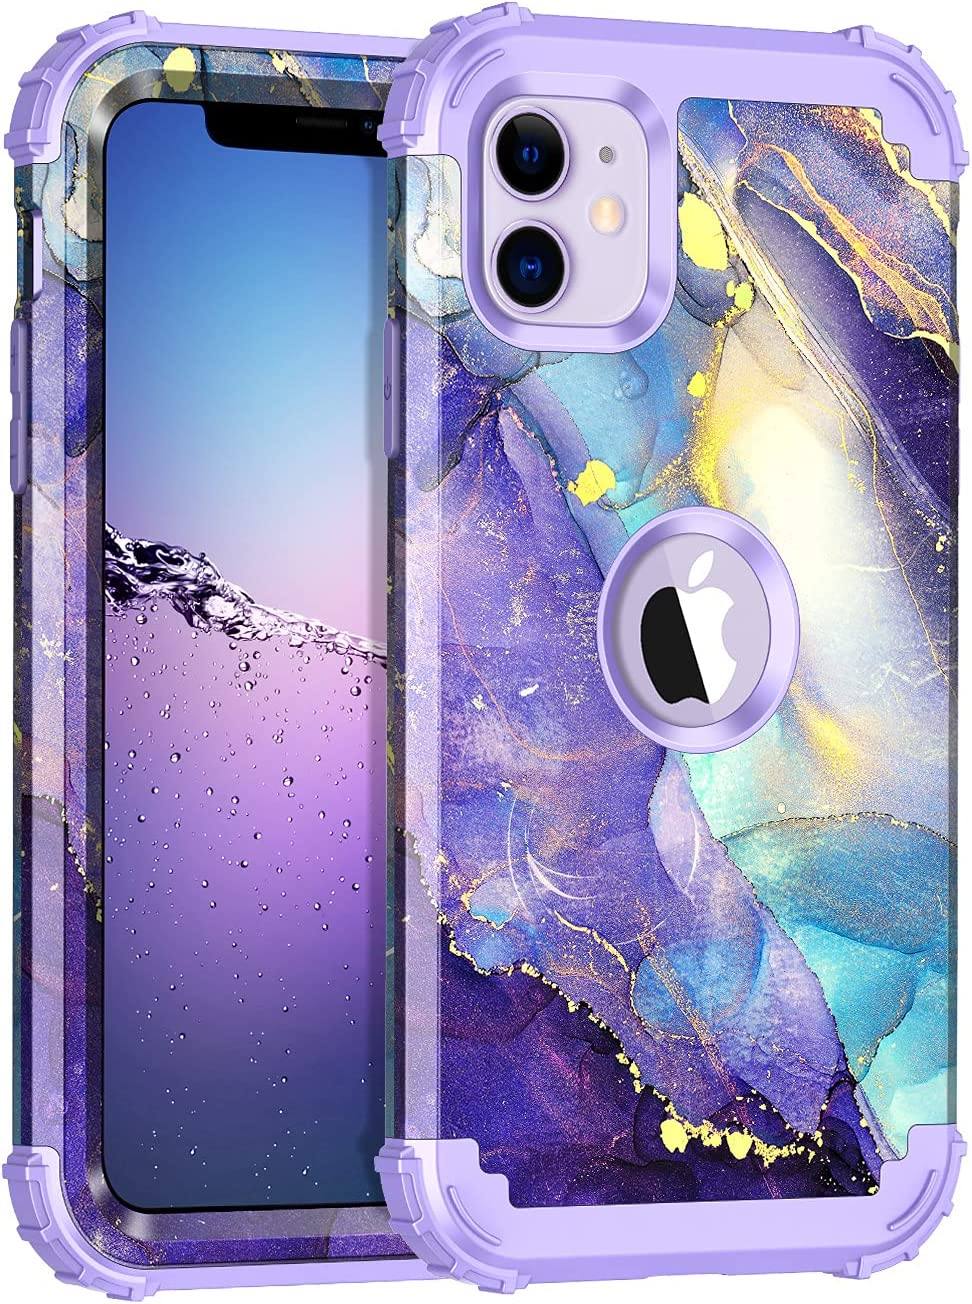 Rancase for iPhone 11 Case,Three Layer Heavy Duty Shockproof Protection Hard Plastic Bumper +Soft Silicone Rubber Protective Case for Apple iPhone 11 6.1 inch,Purple